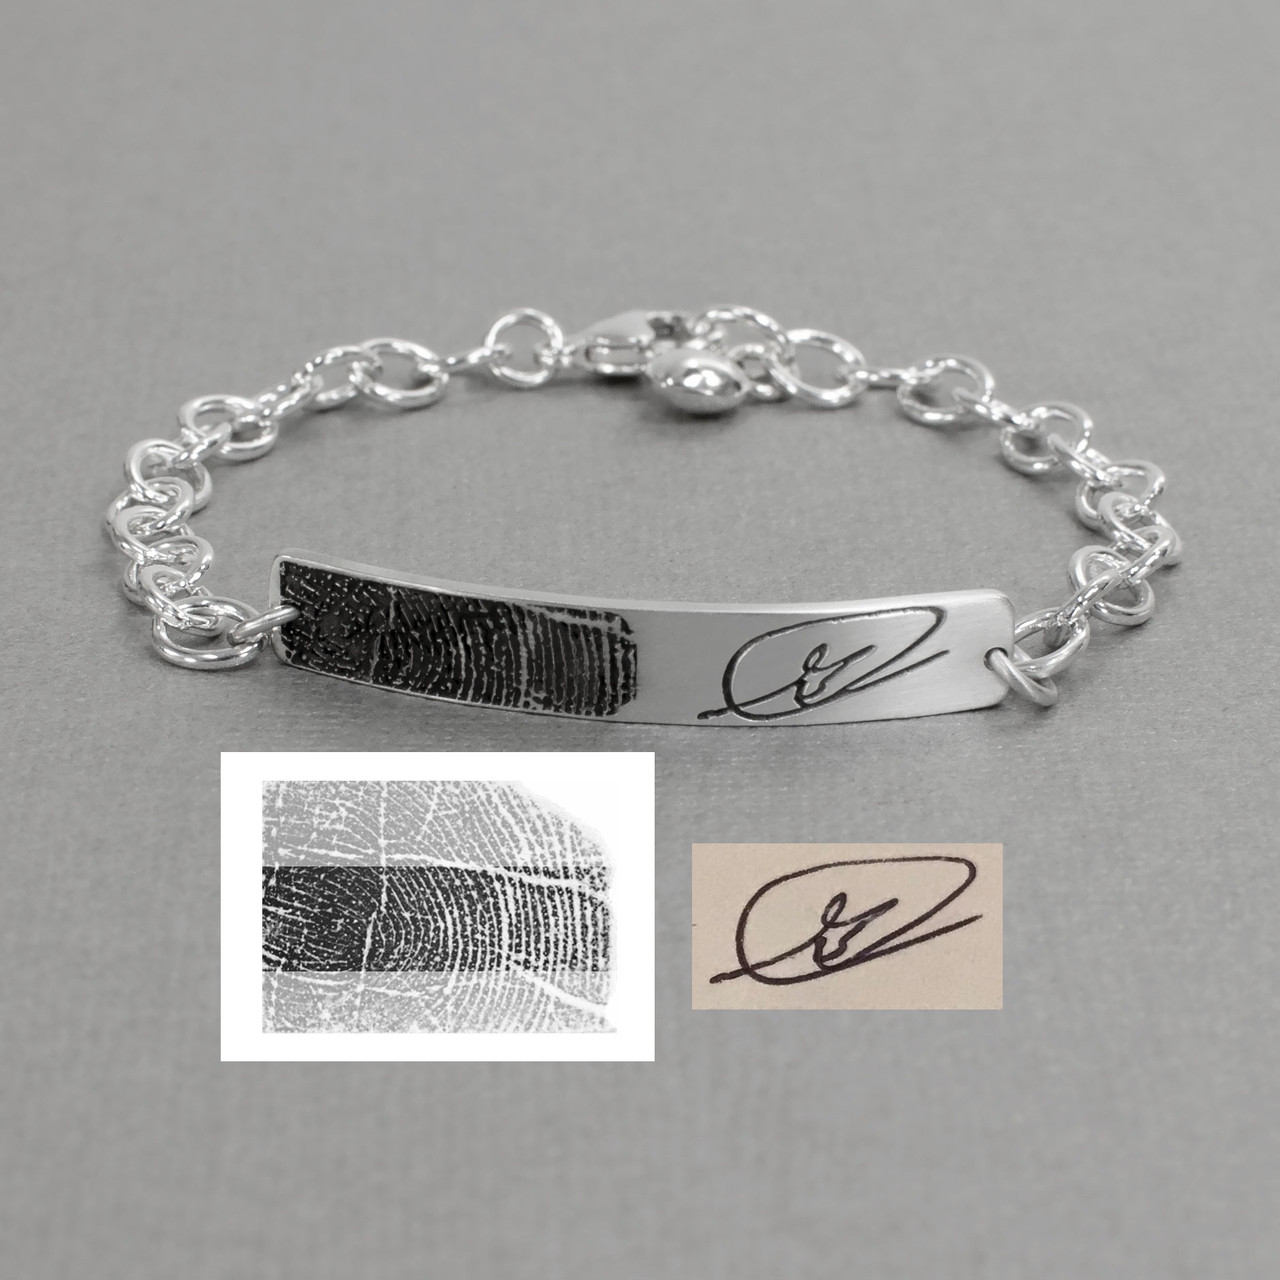 Custom Silver Fingerprint and handwriting ID Bracelet, shown on gray with original handwriting and fingerprint